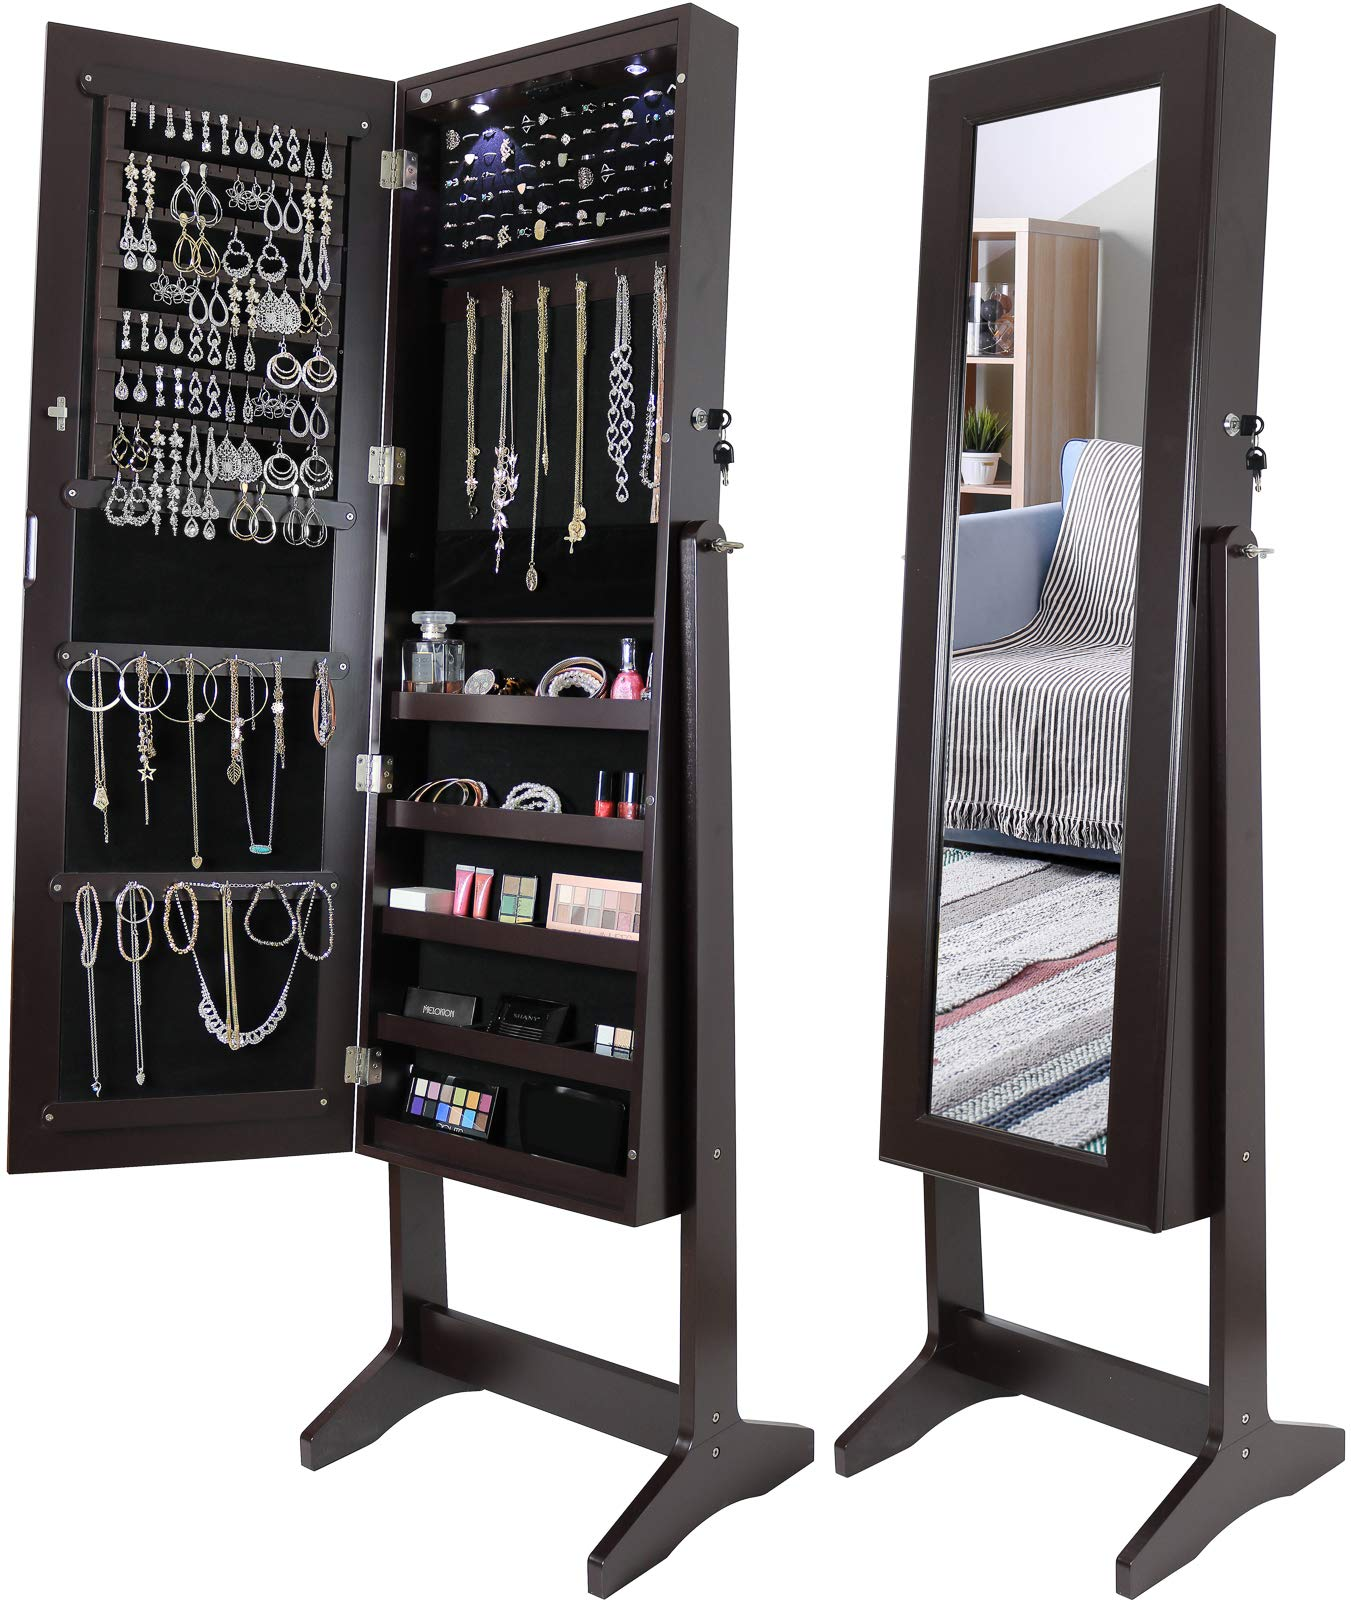 Greenco Free Standing Jewelry Organizer Armoire with Large Mirror and Led Lights, Lockable, Espresso by Greenco